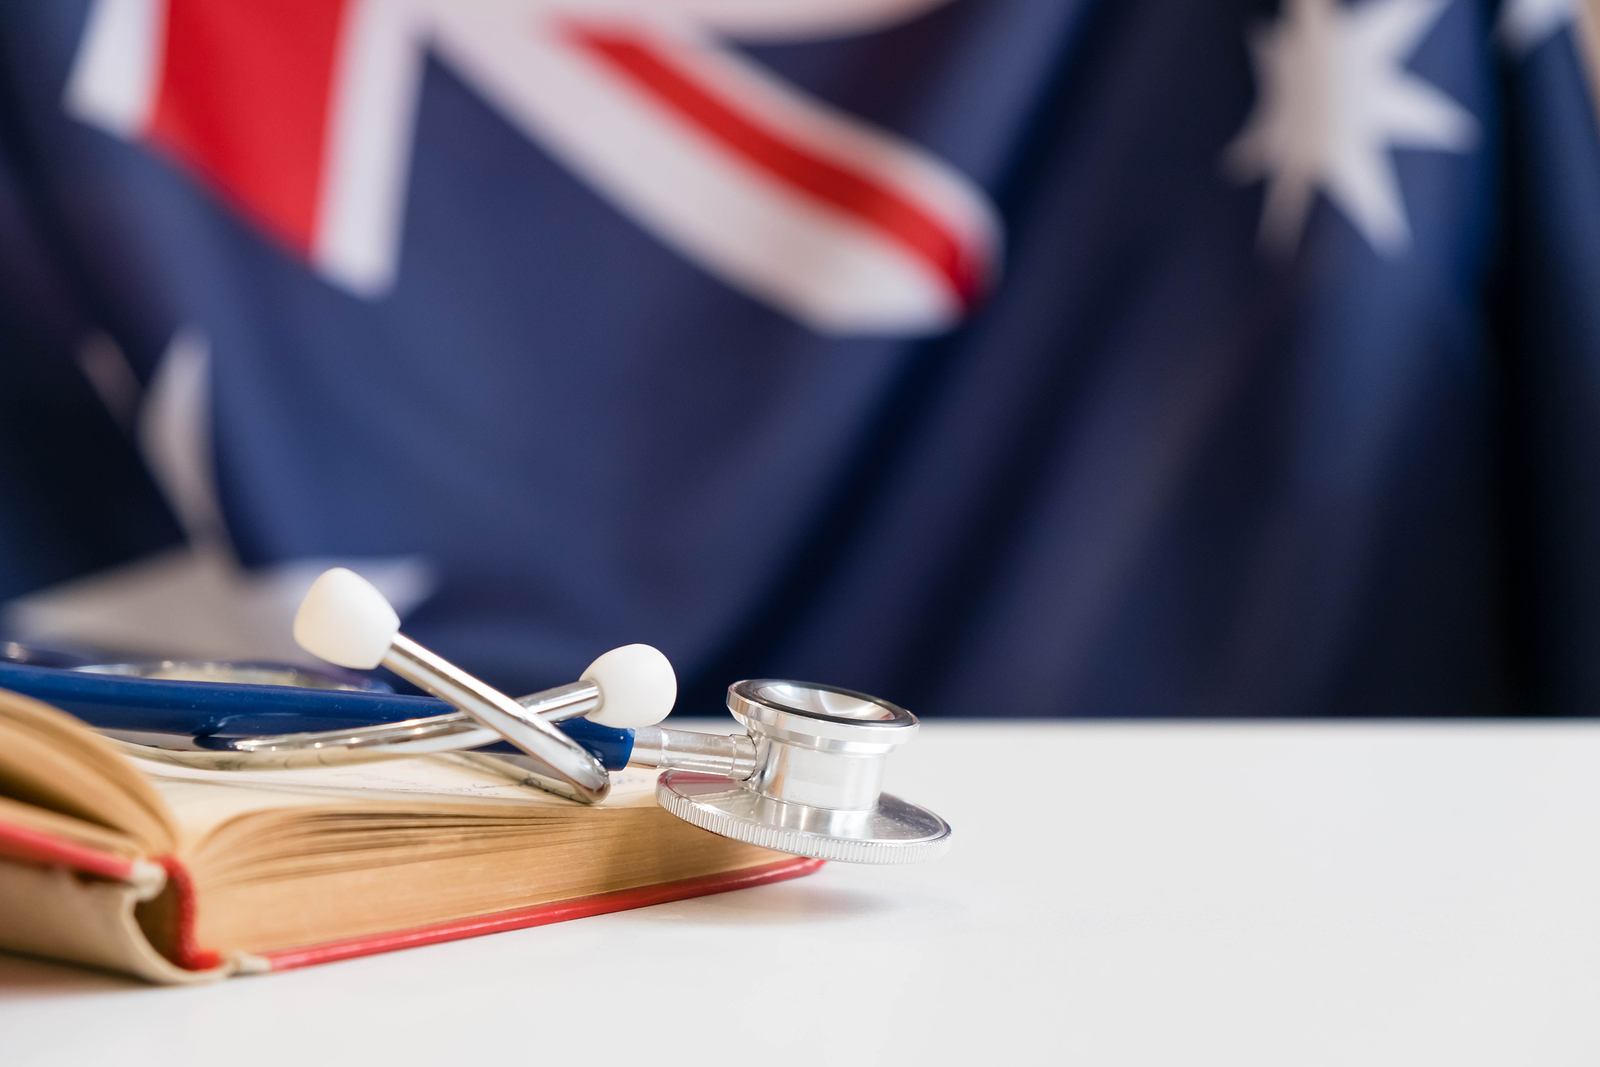 Stethoscope with national flag conceptual series - Australia